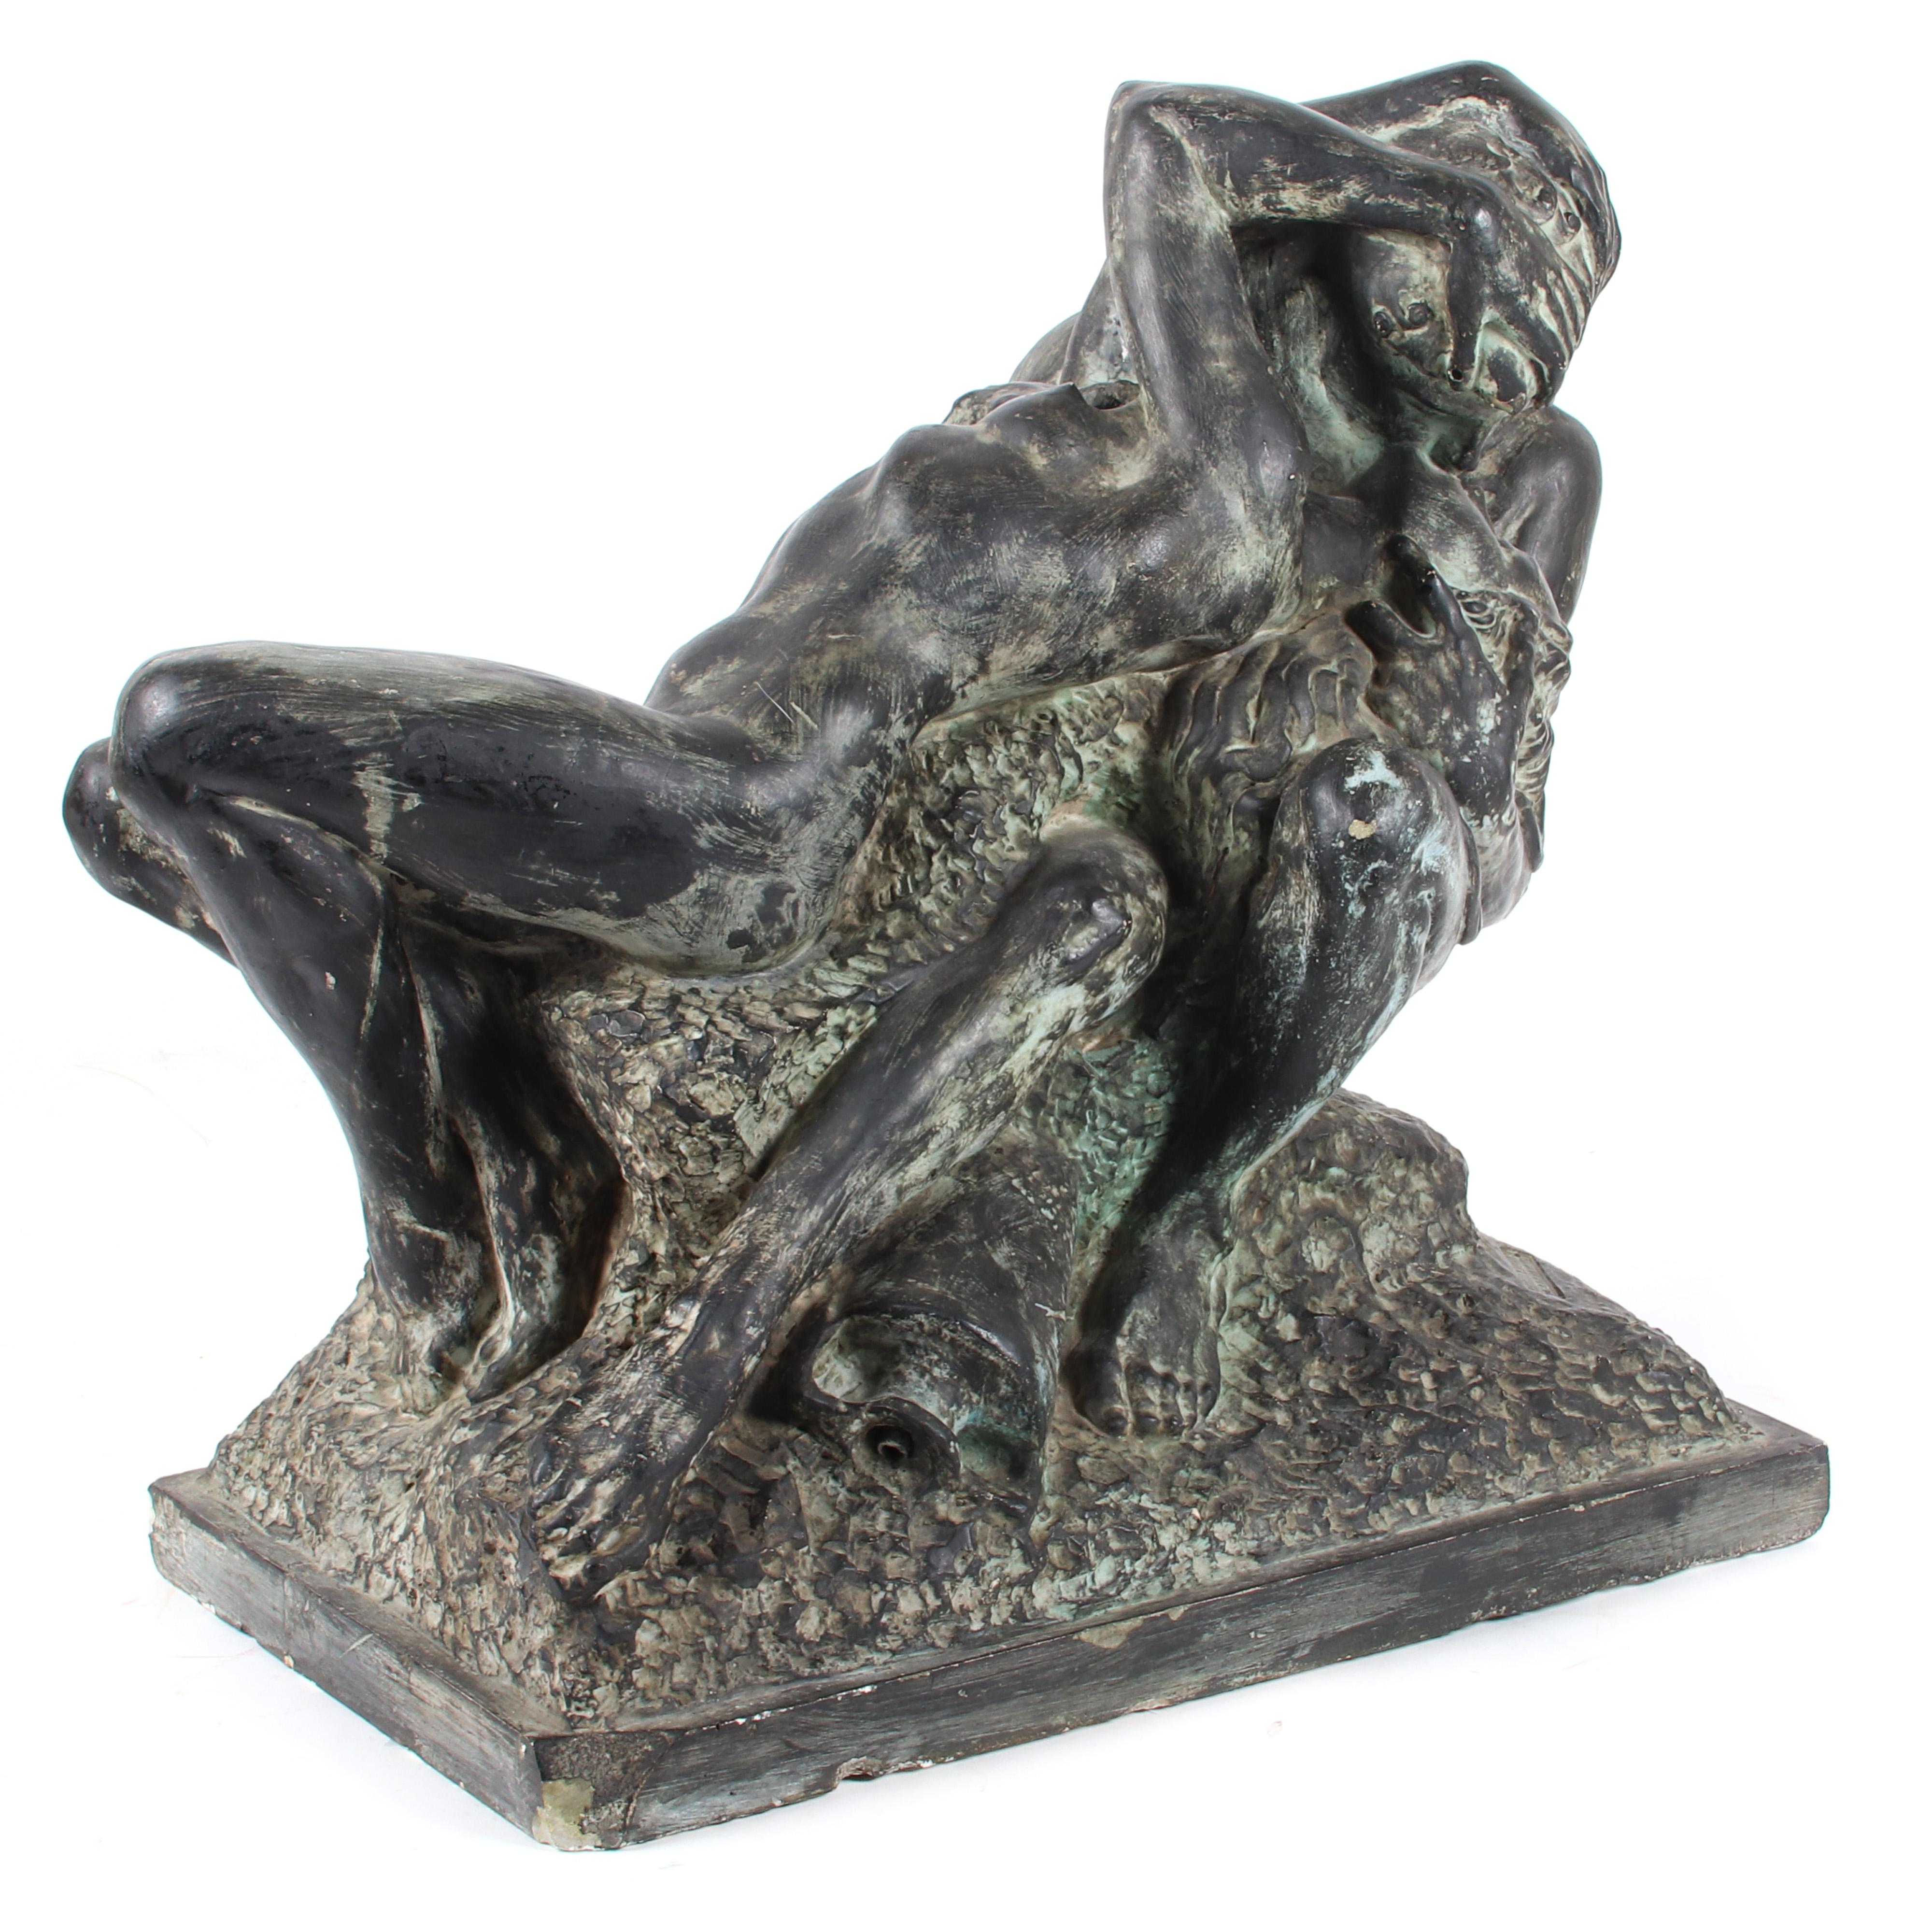 """Edgardo Simone, (Italian/American, 1890-1948), The Kiss, patinated plaster casting for kissing nudes fountain sculpture, 19"""" H x 19"""" W x 11"""" D."""